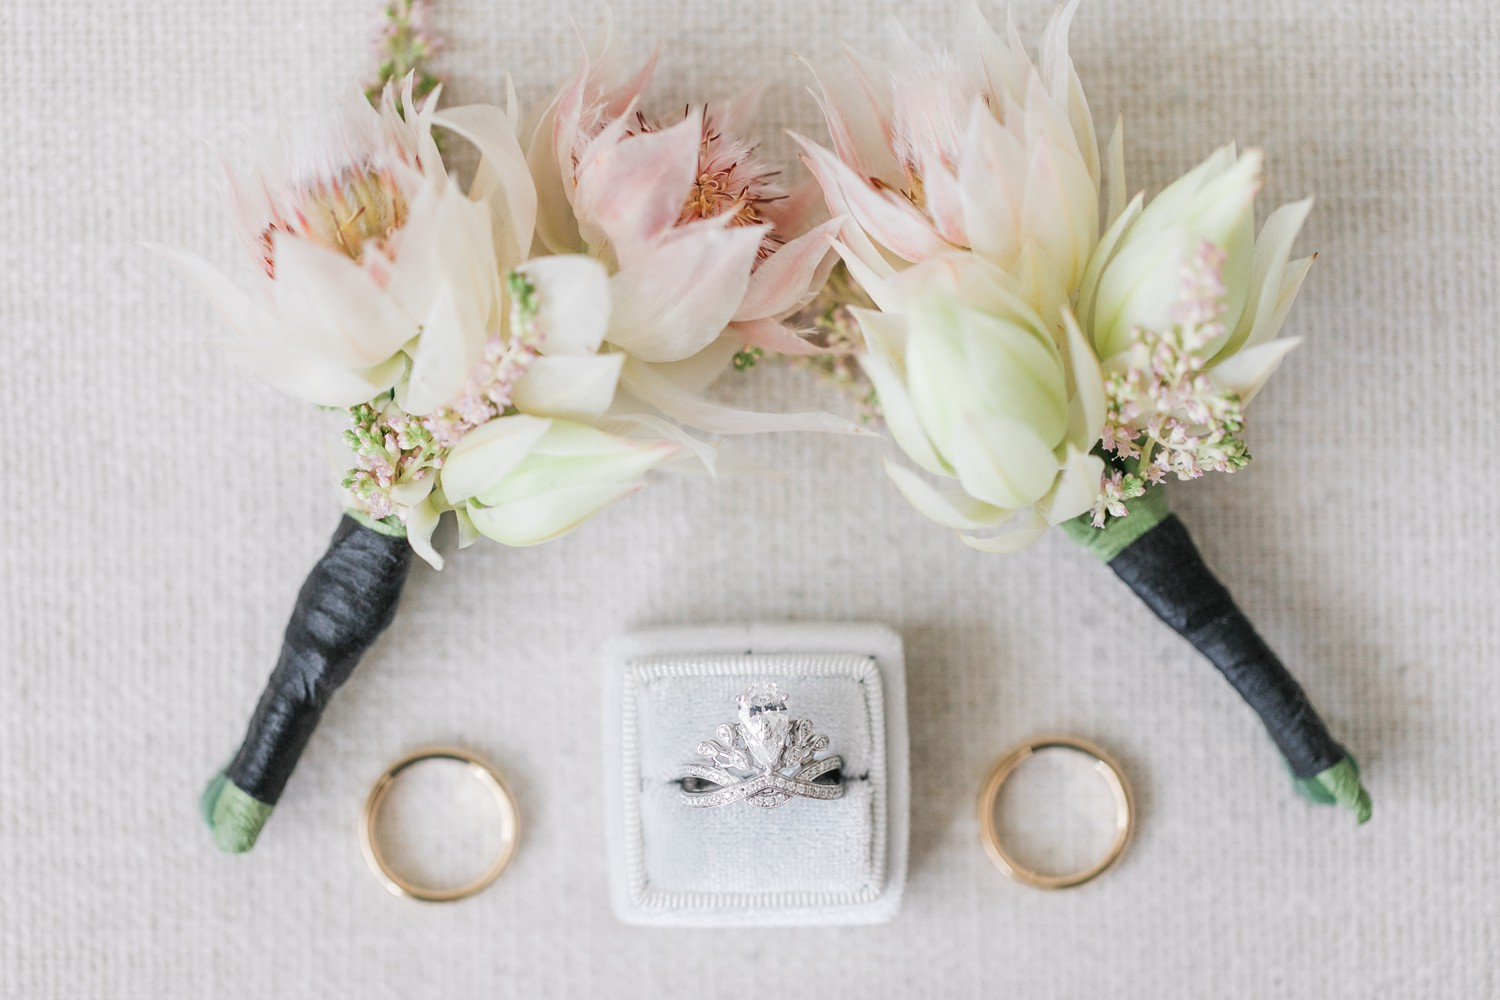 Wedding Rings Luxury Yorkville Vinci Toronto Four Season Wedding Photos with Chinese Bride and Groom